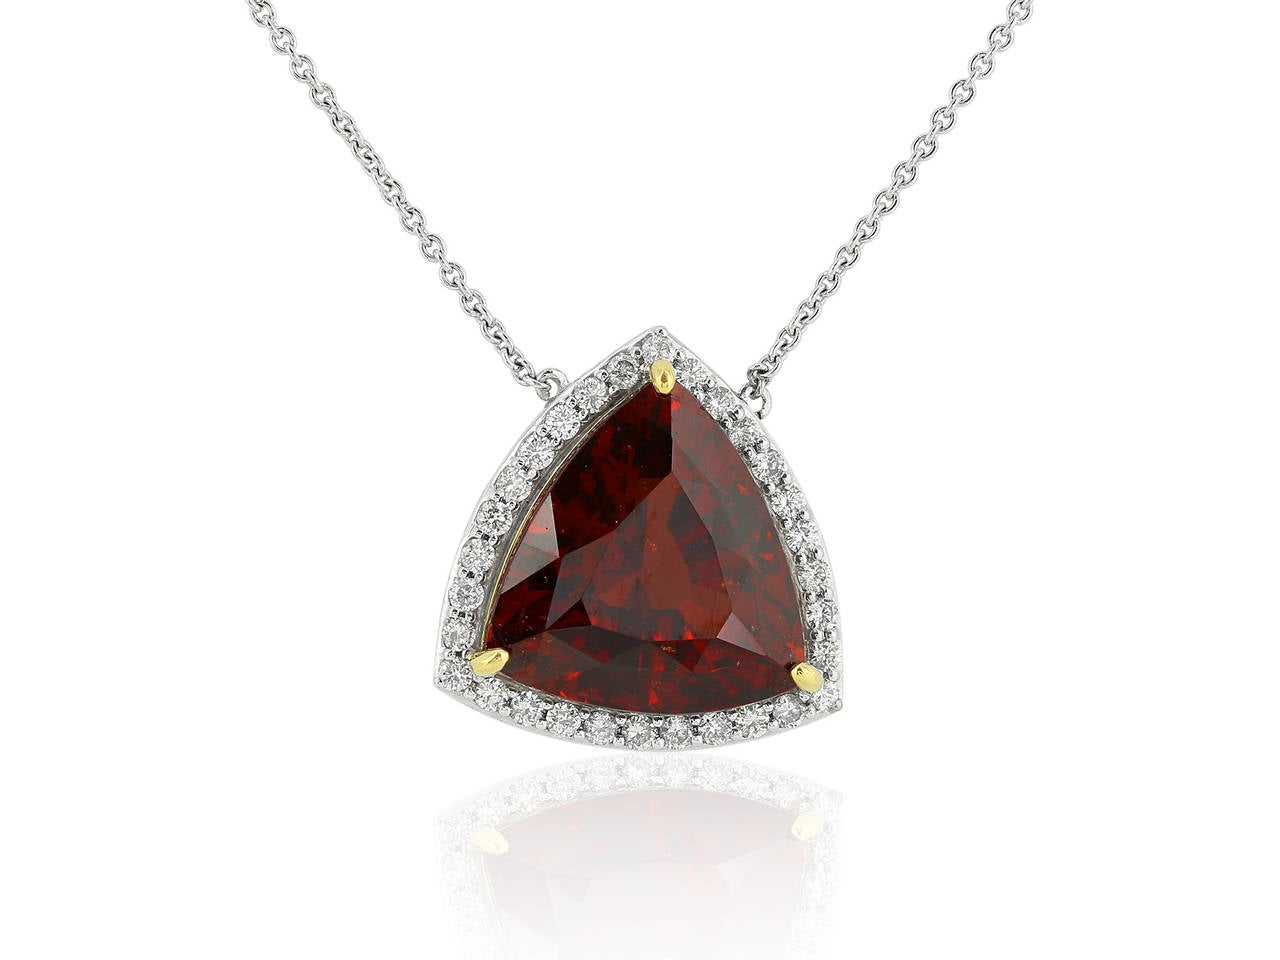 14 karat white gold pendant consisting of one trilliant shape Almandine Garnet weighing approximately 12.75 carats surrounded by 1 row of round brilliant cut diamond accents.